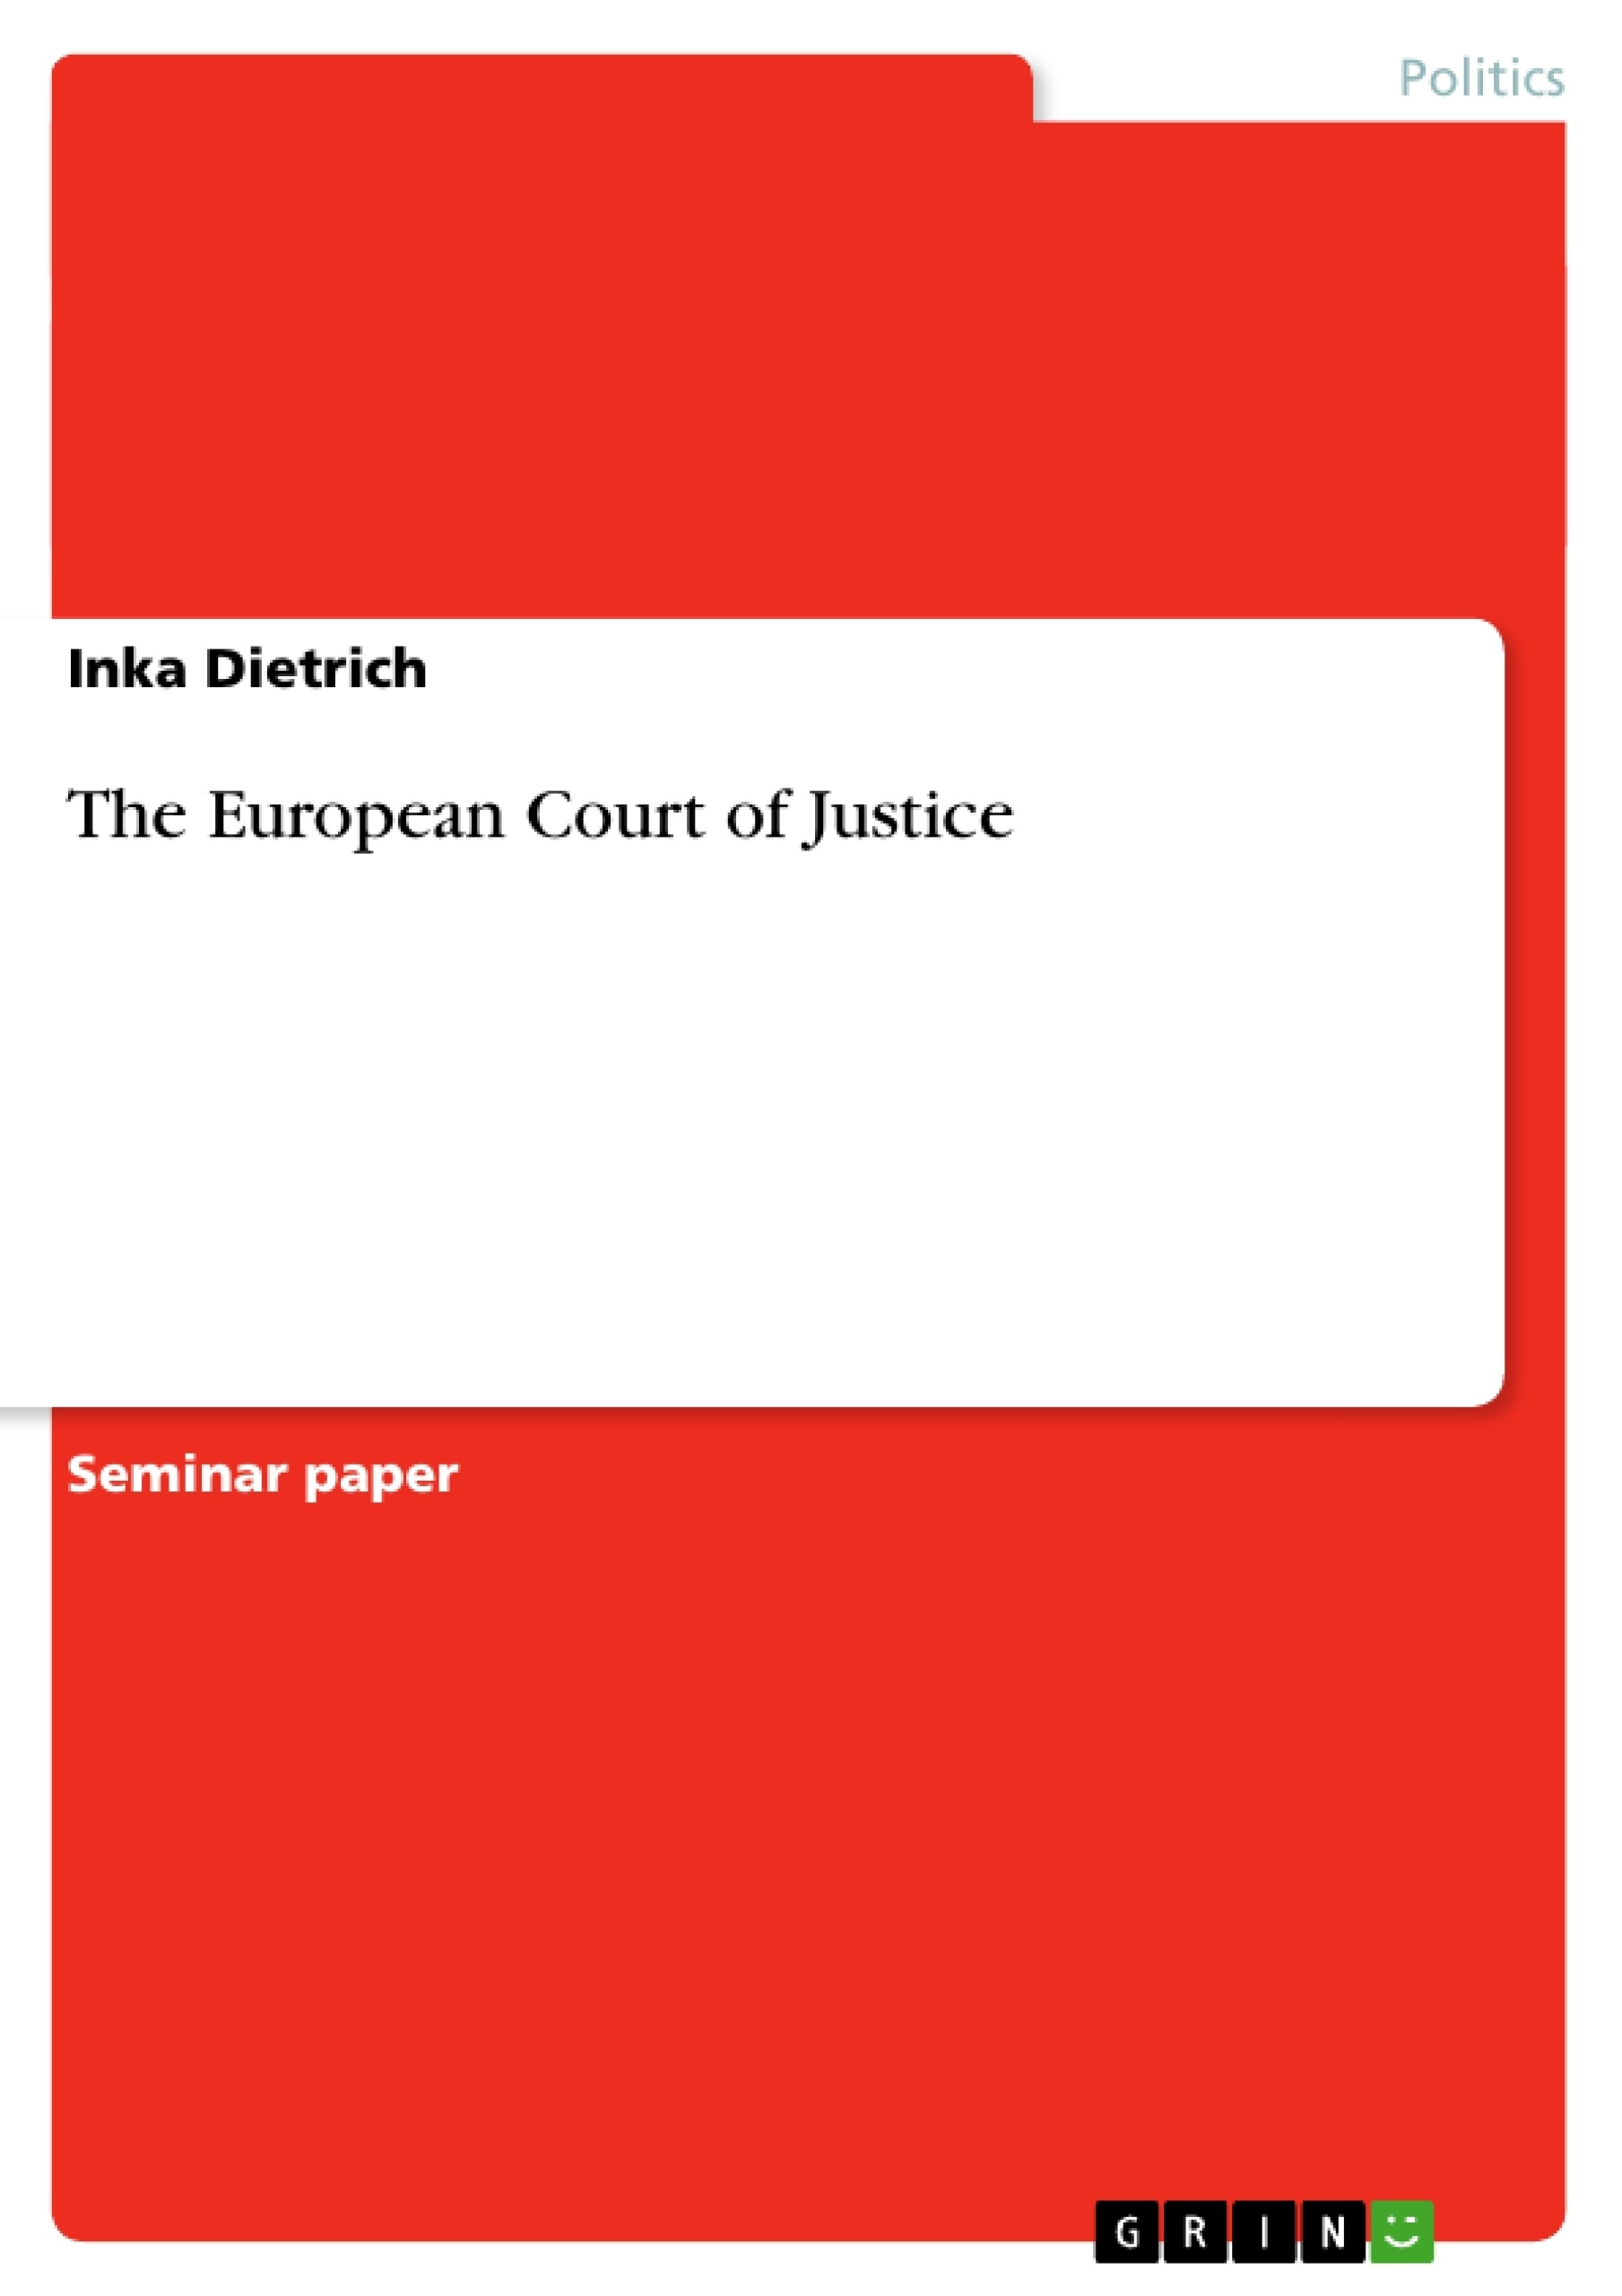 Title: The European Court of Justice